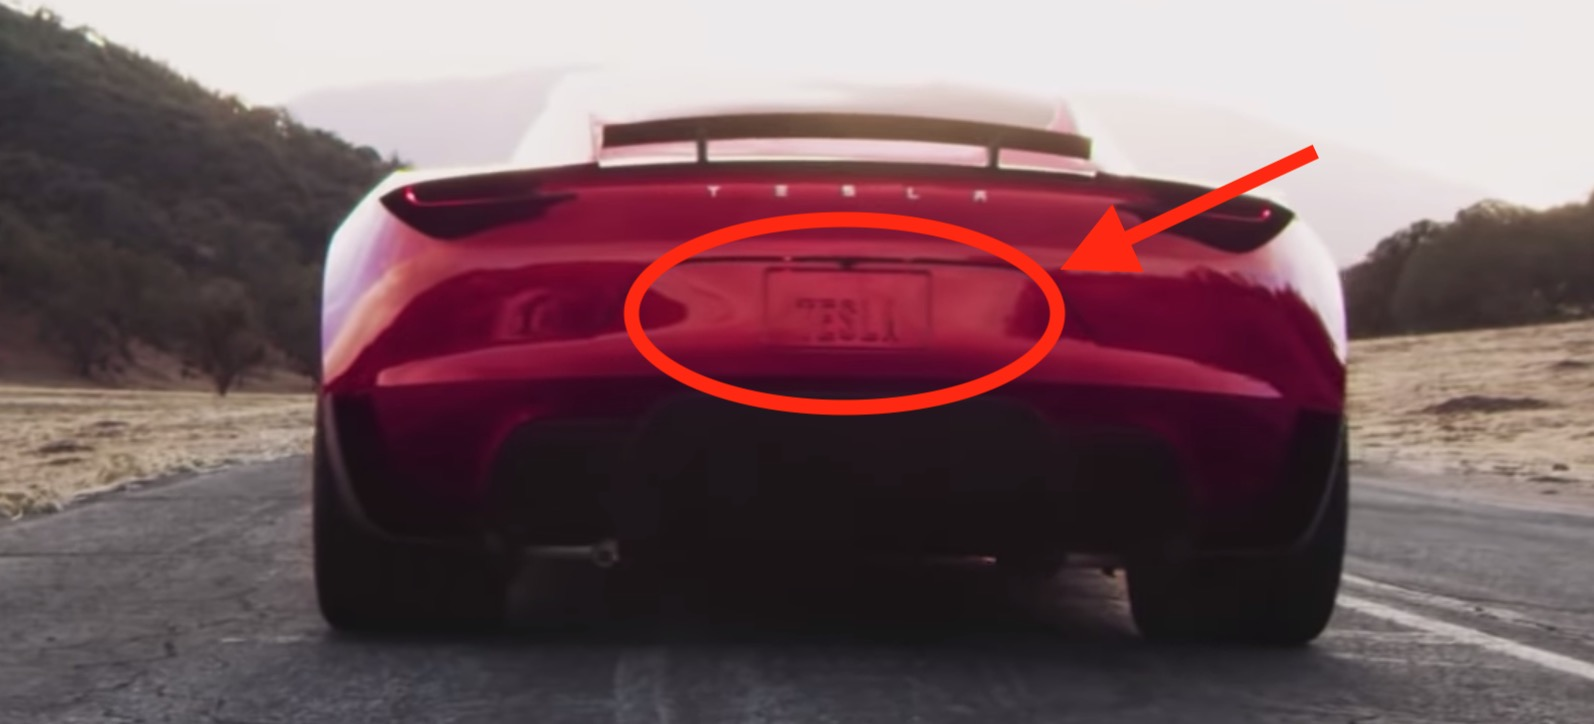 Tesla Roadster's SpaceX thruster will be hidden behind the license plate, says Elon Musk